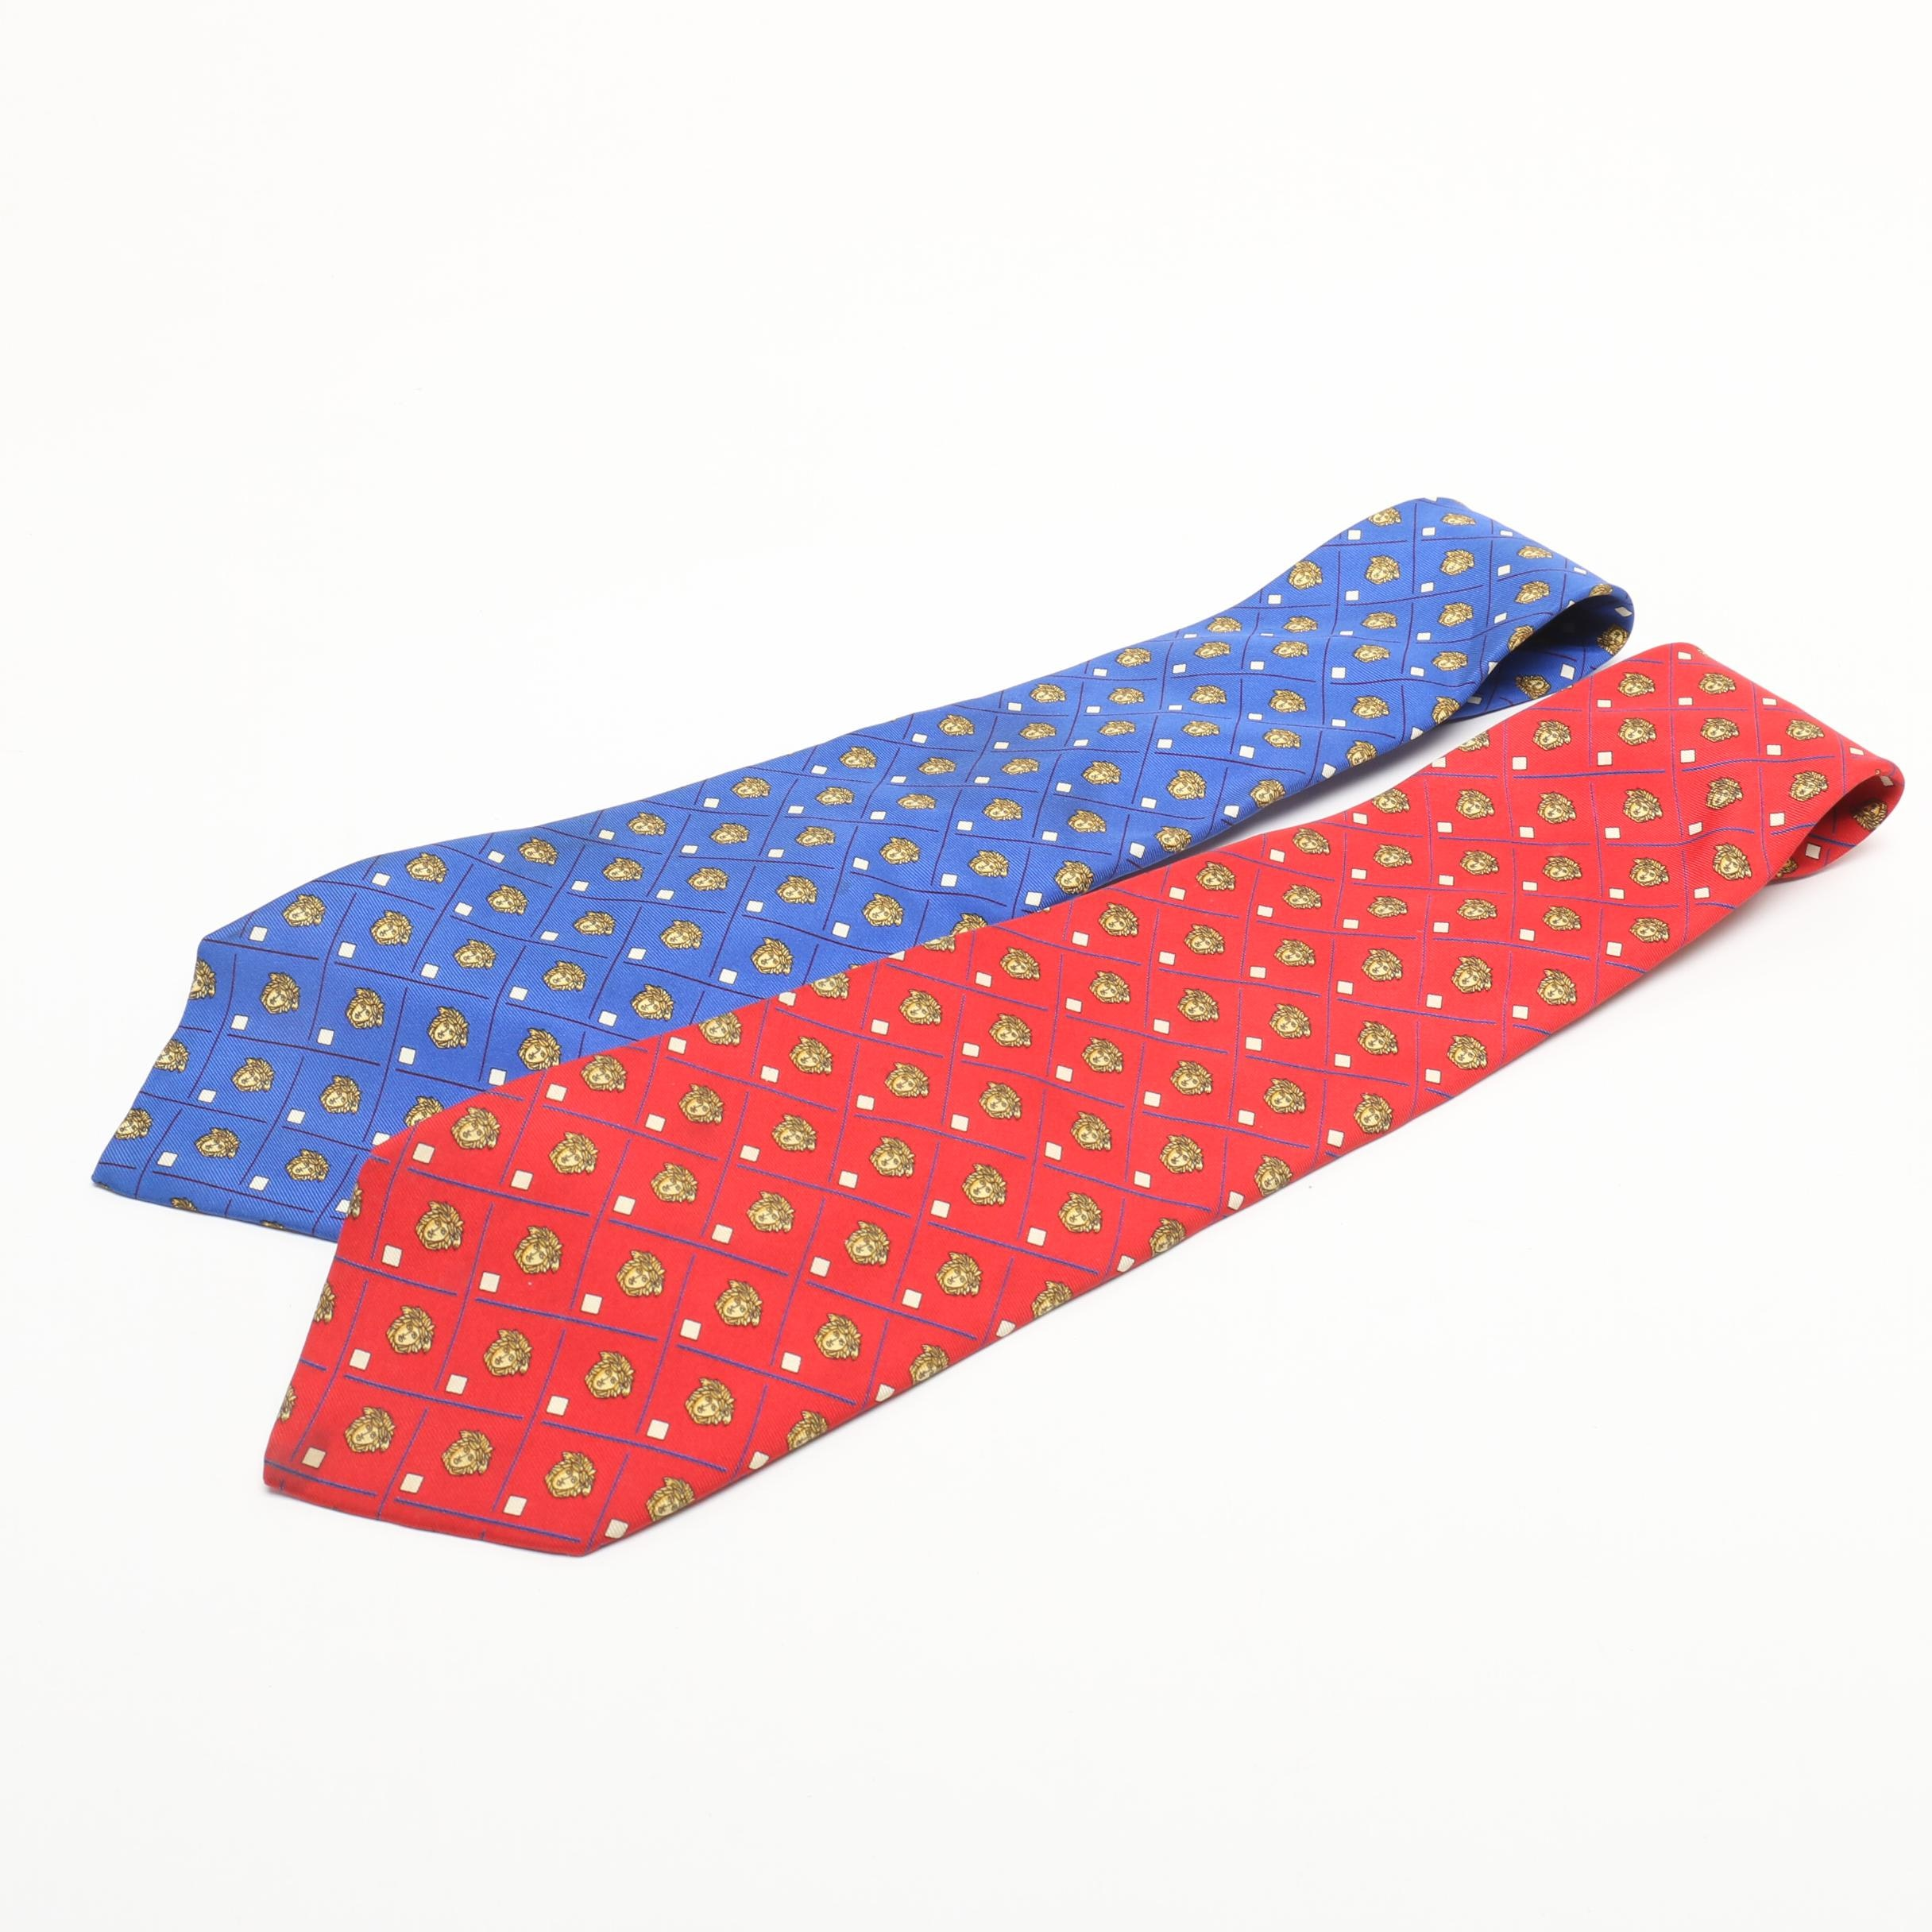 Men's Gianni Versace Silk Print Neckties